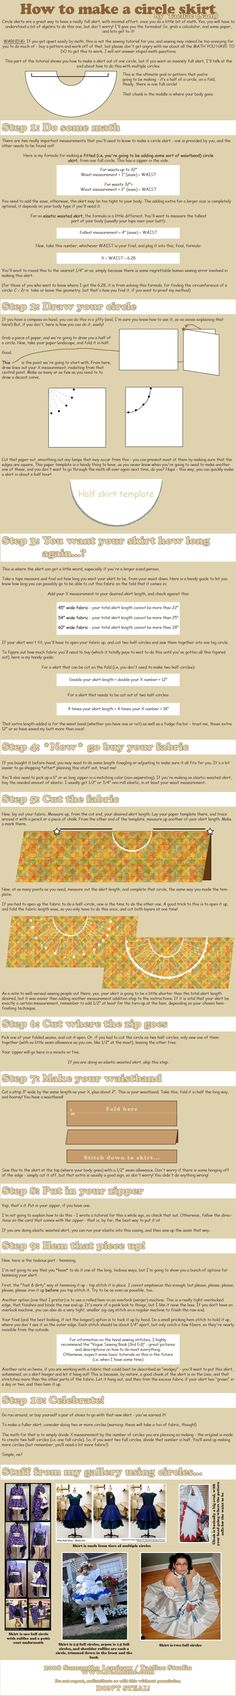 Tutorial: Circle Skirts by taeliac.deviantart.com on @deviantART